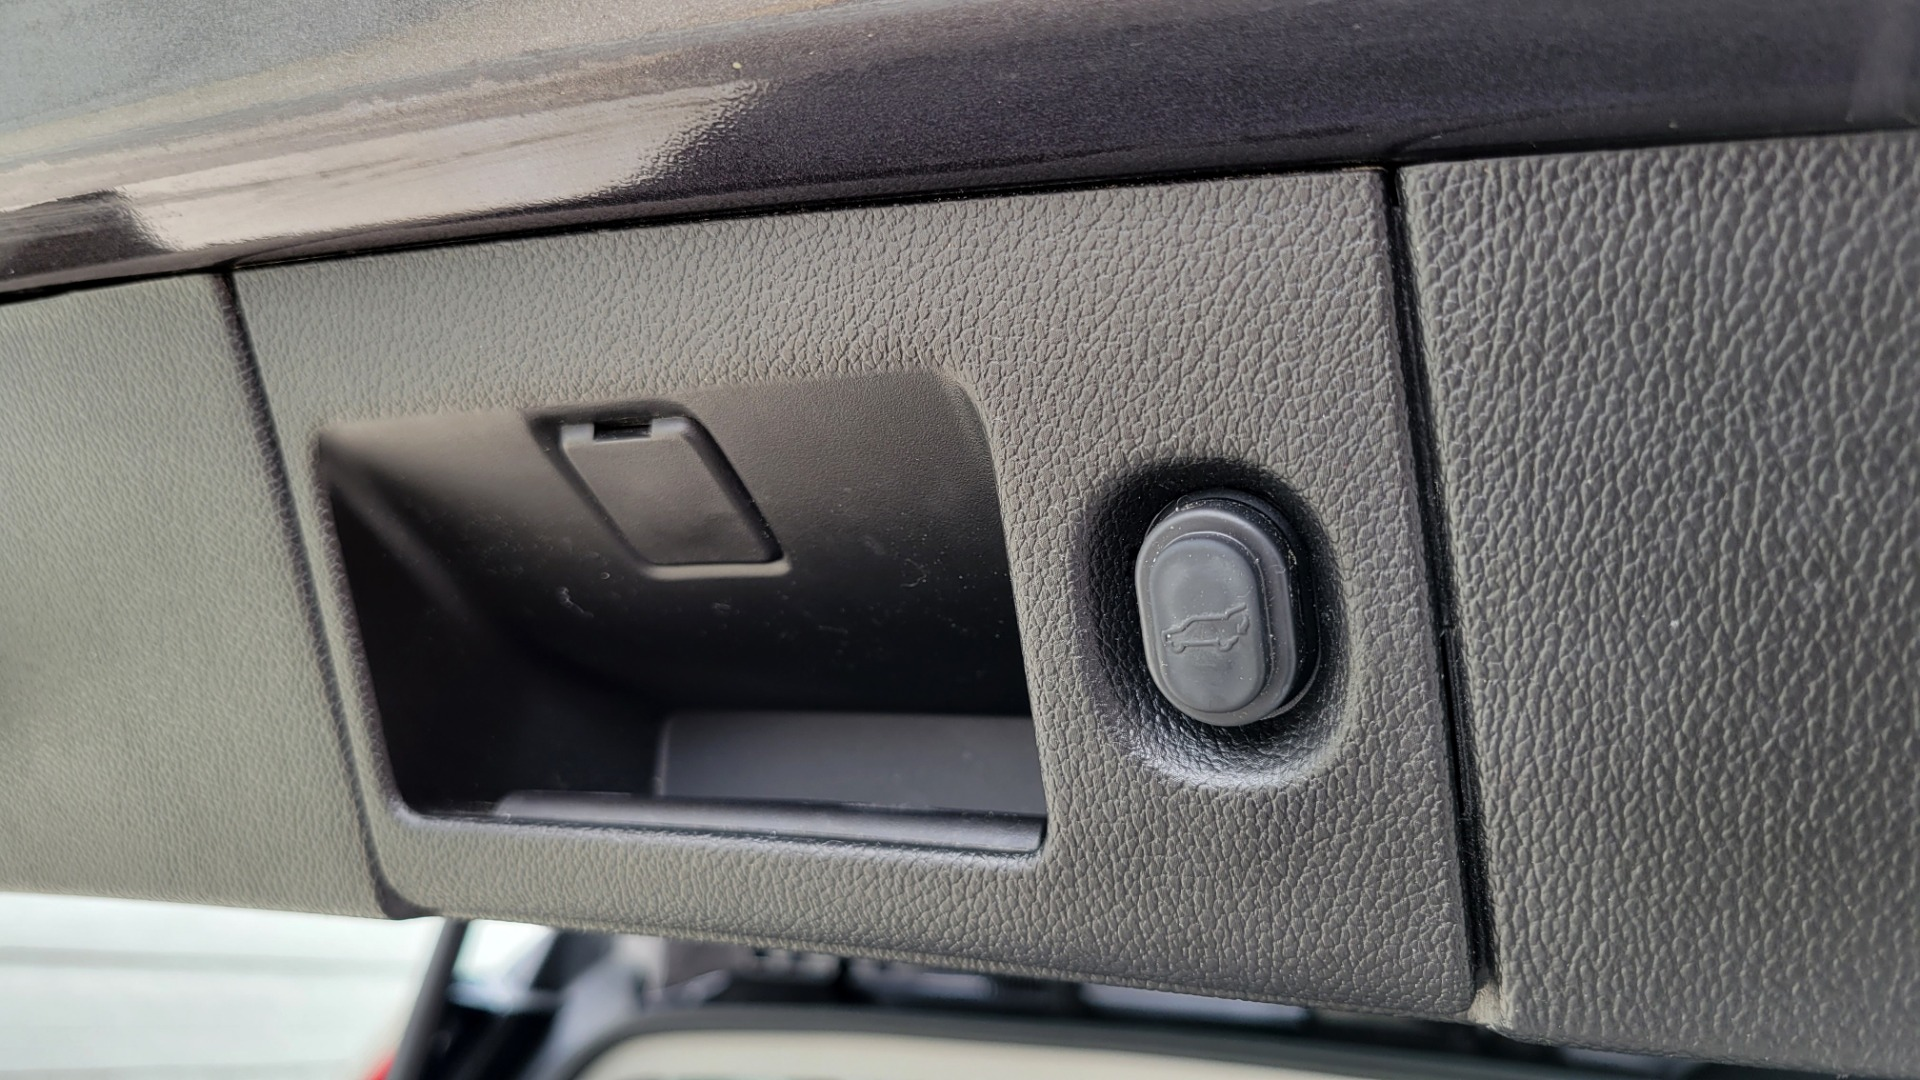 Used 2018 Cadillac ESCALADE ESV LUXURY 4WD / NAV / SUNROOF / ENTERTAIN / REARVIEW / 3-ROW for sale Sold at Formula Imports in Charlotte NC 28227 25